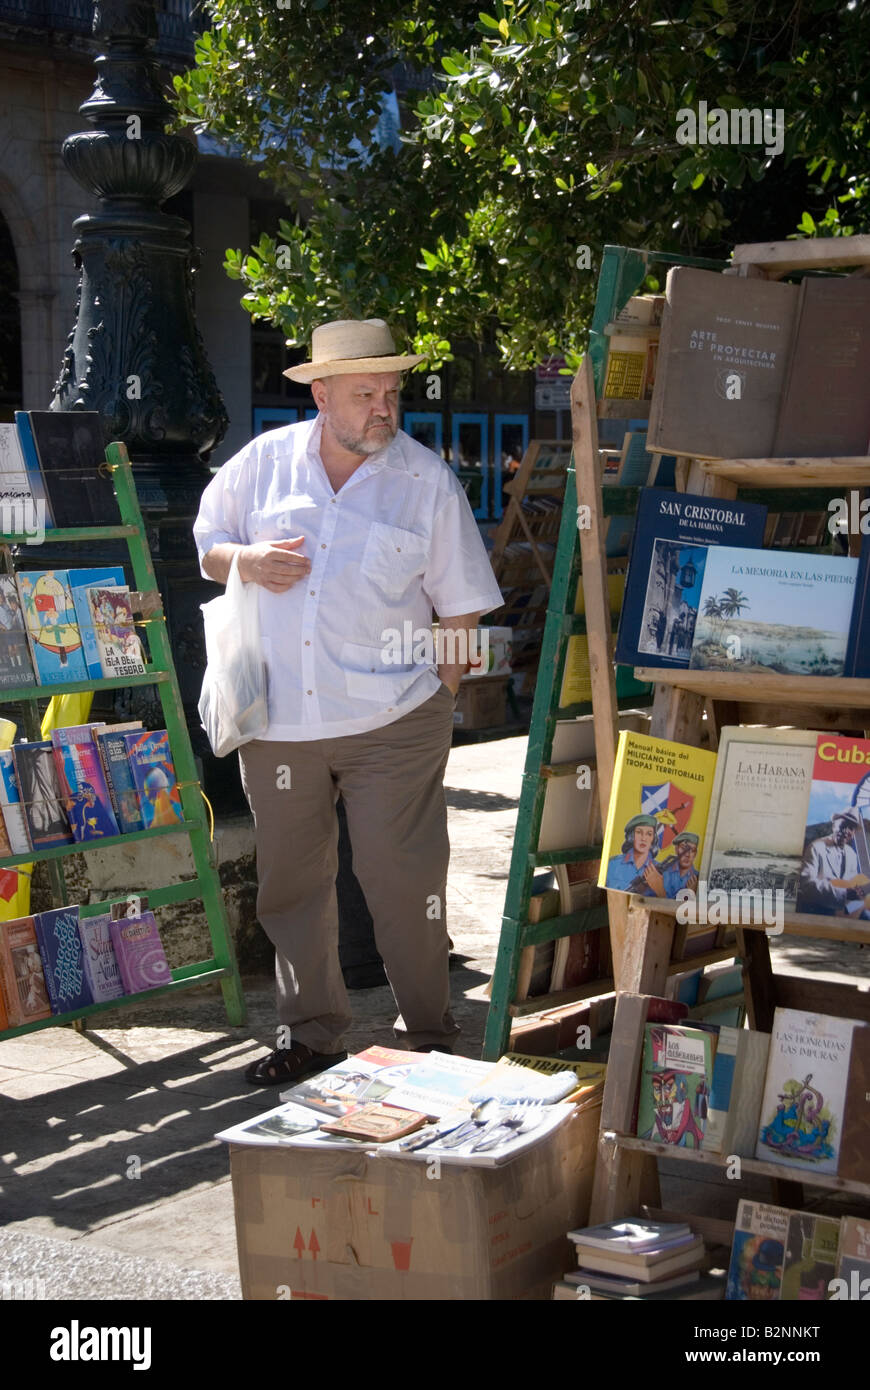 Man browsing second hand books for sale at a book market on Plaza De Armas in La Habana Vieja Havana Cuba - Stock Image